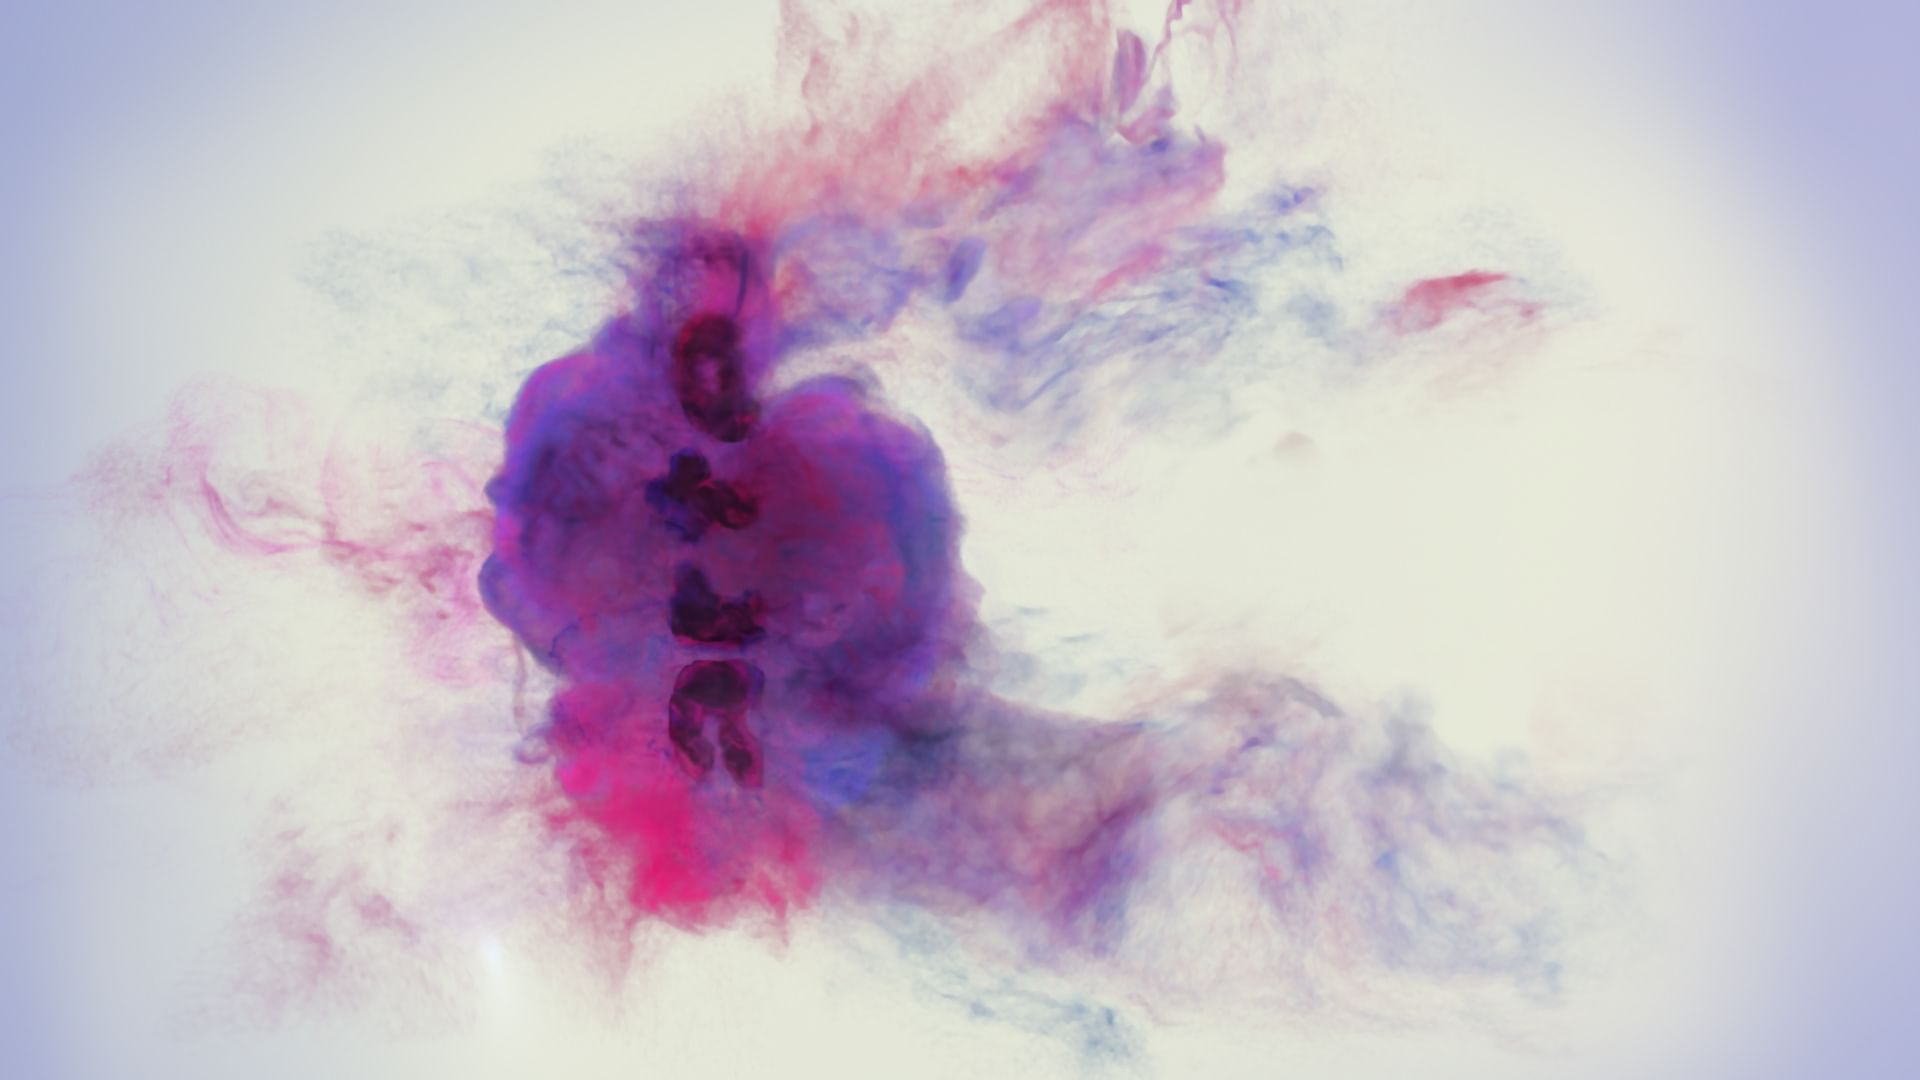 Discussion avec Francis Ford Coppola